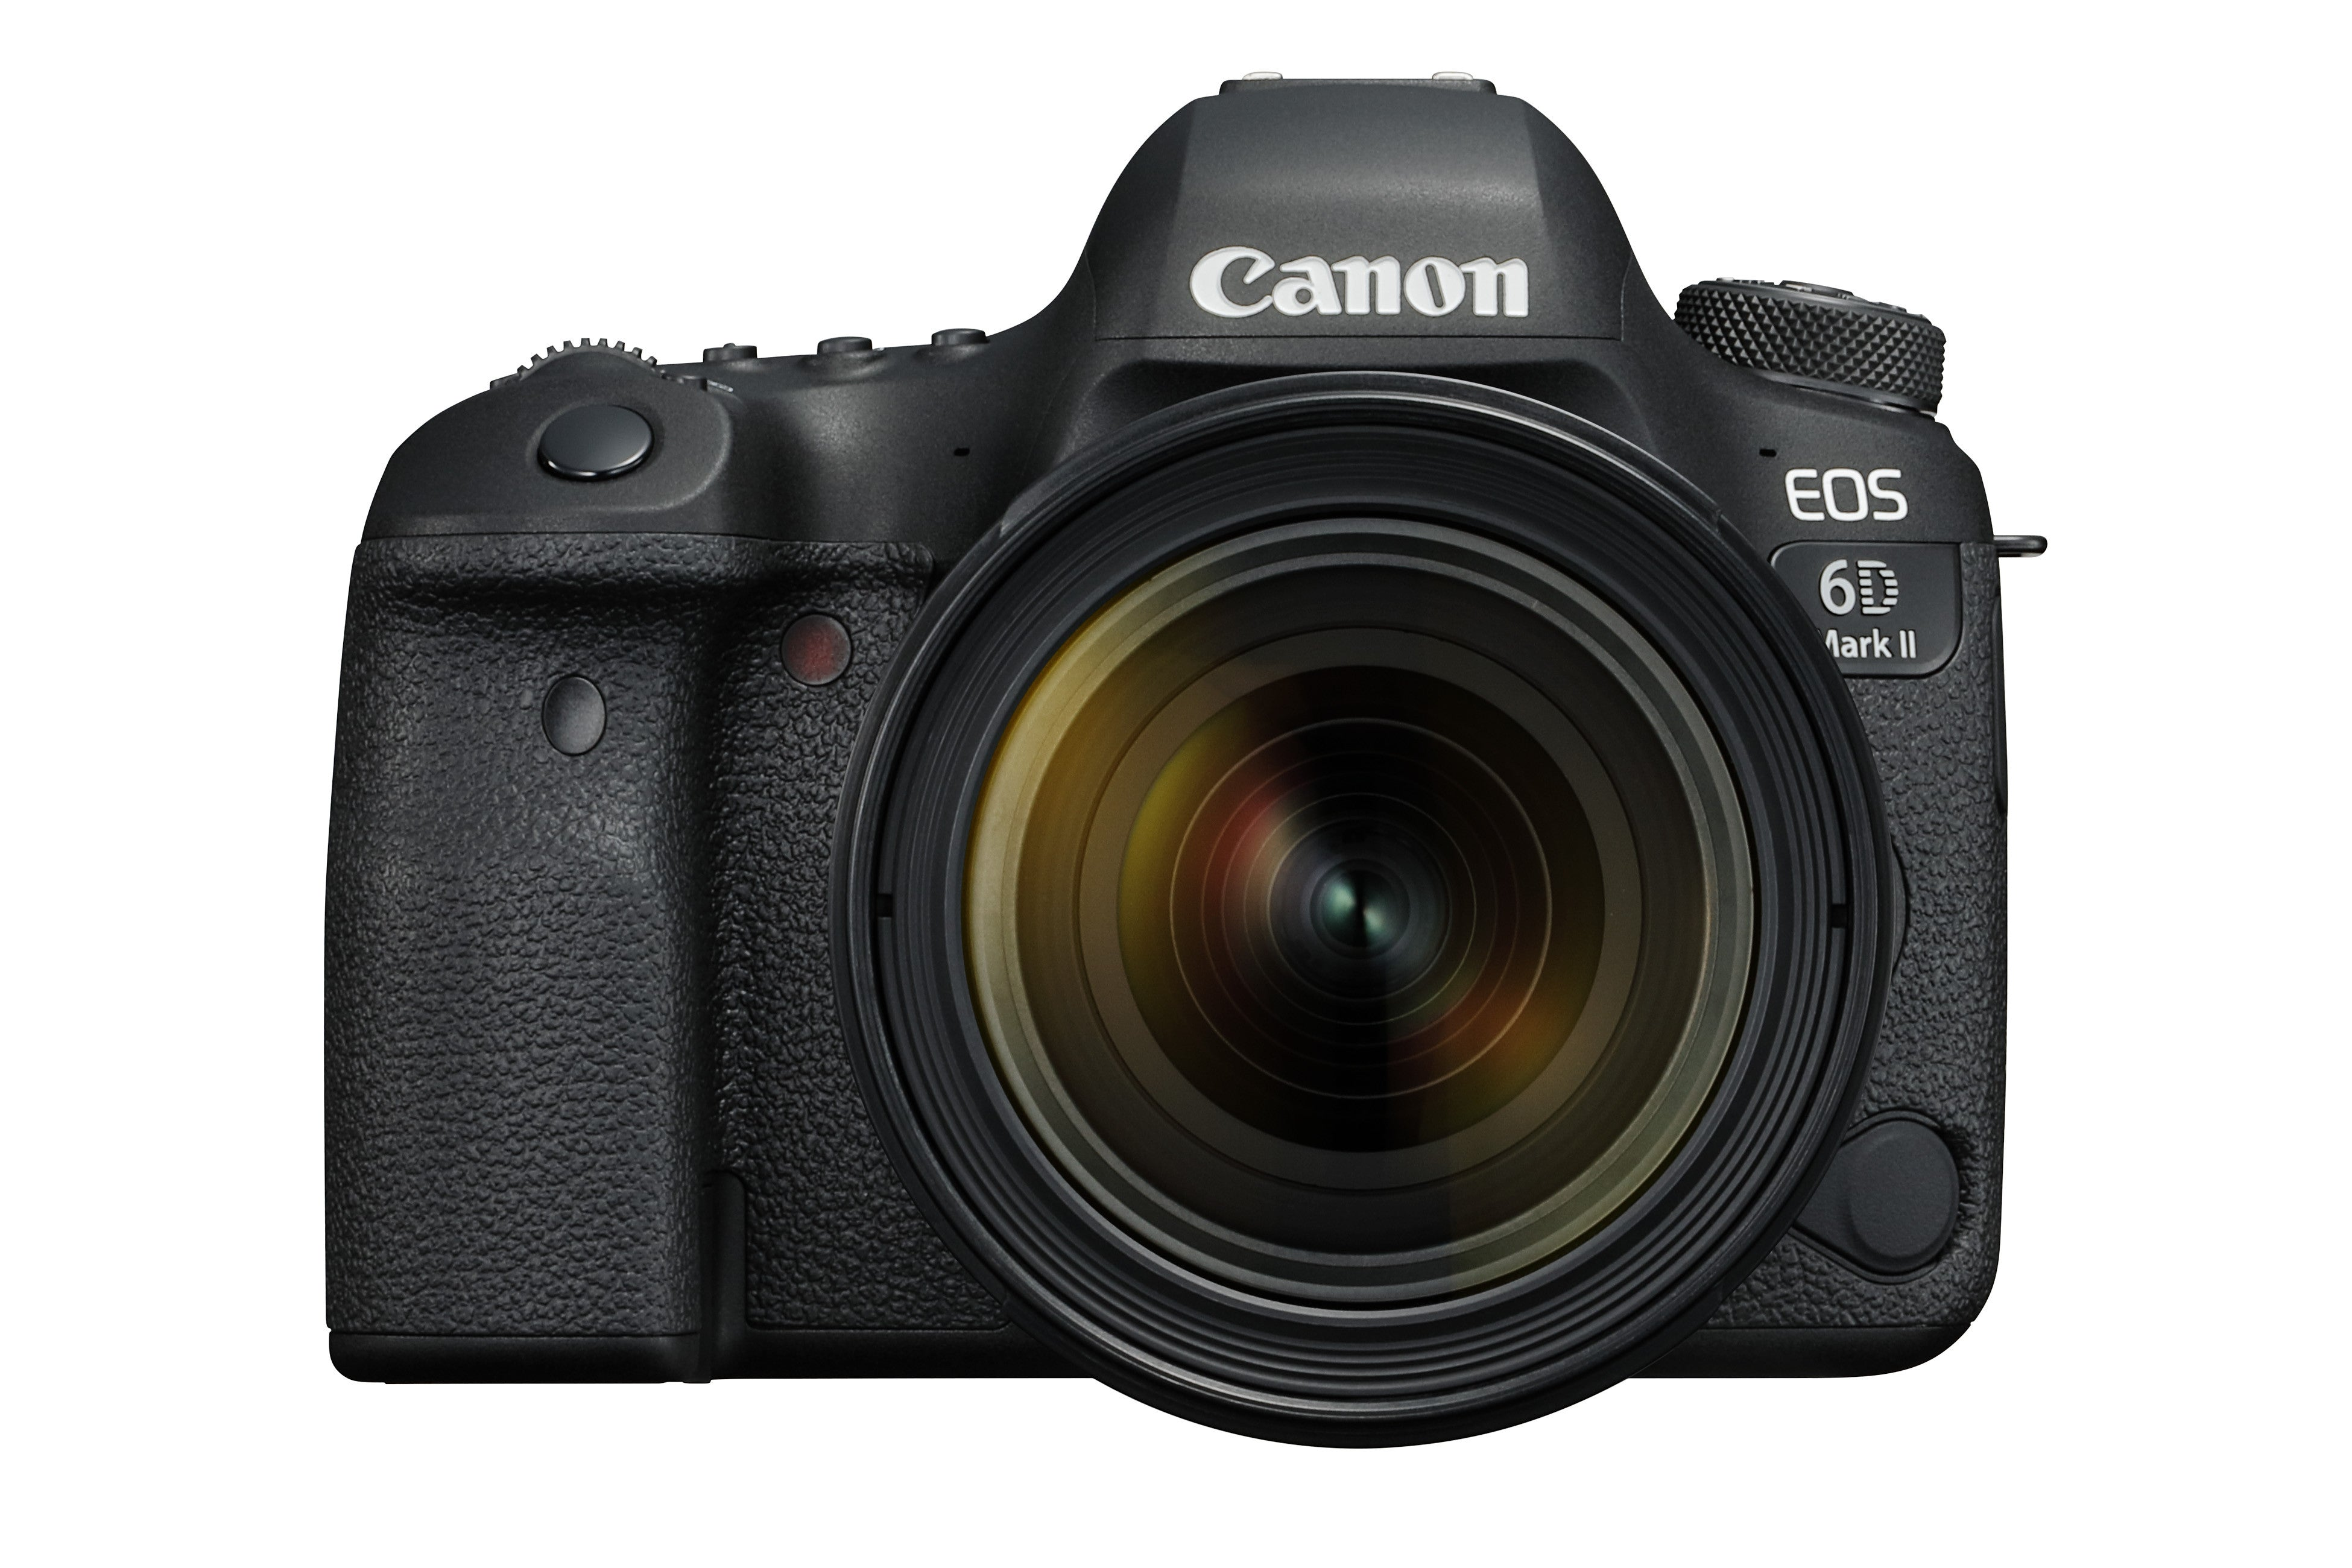 Canon EOS 6DMkII/6DMk2 Key Features